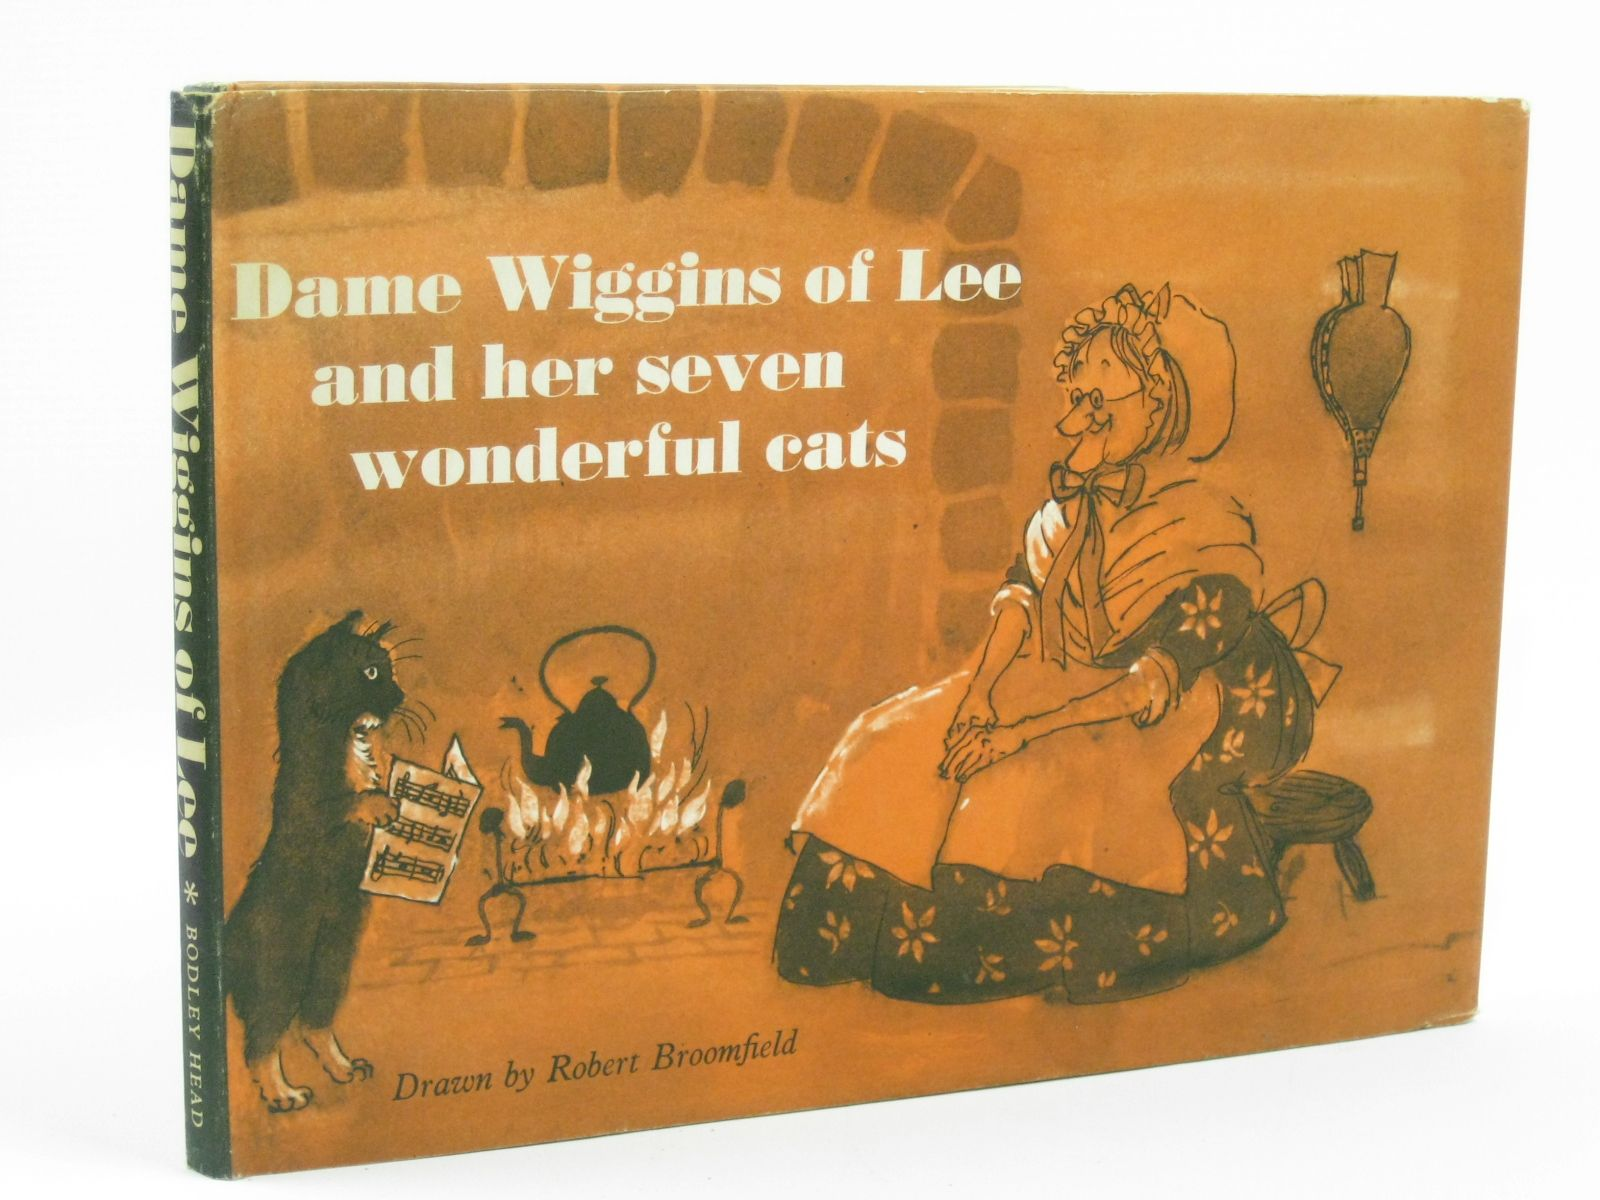 Photo of DAME WIGGINS OF LEE AND HER SEVEN WONDERFUL CATS written by Ruskin, John illustrated by Broomfield, Robert published by The Bodley Head (STOCK CODE: 1506506)  for sale by Stella & Rose's Books